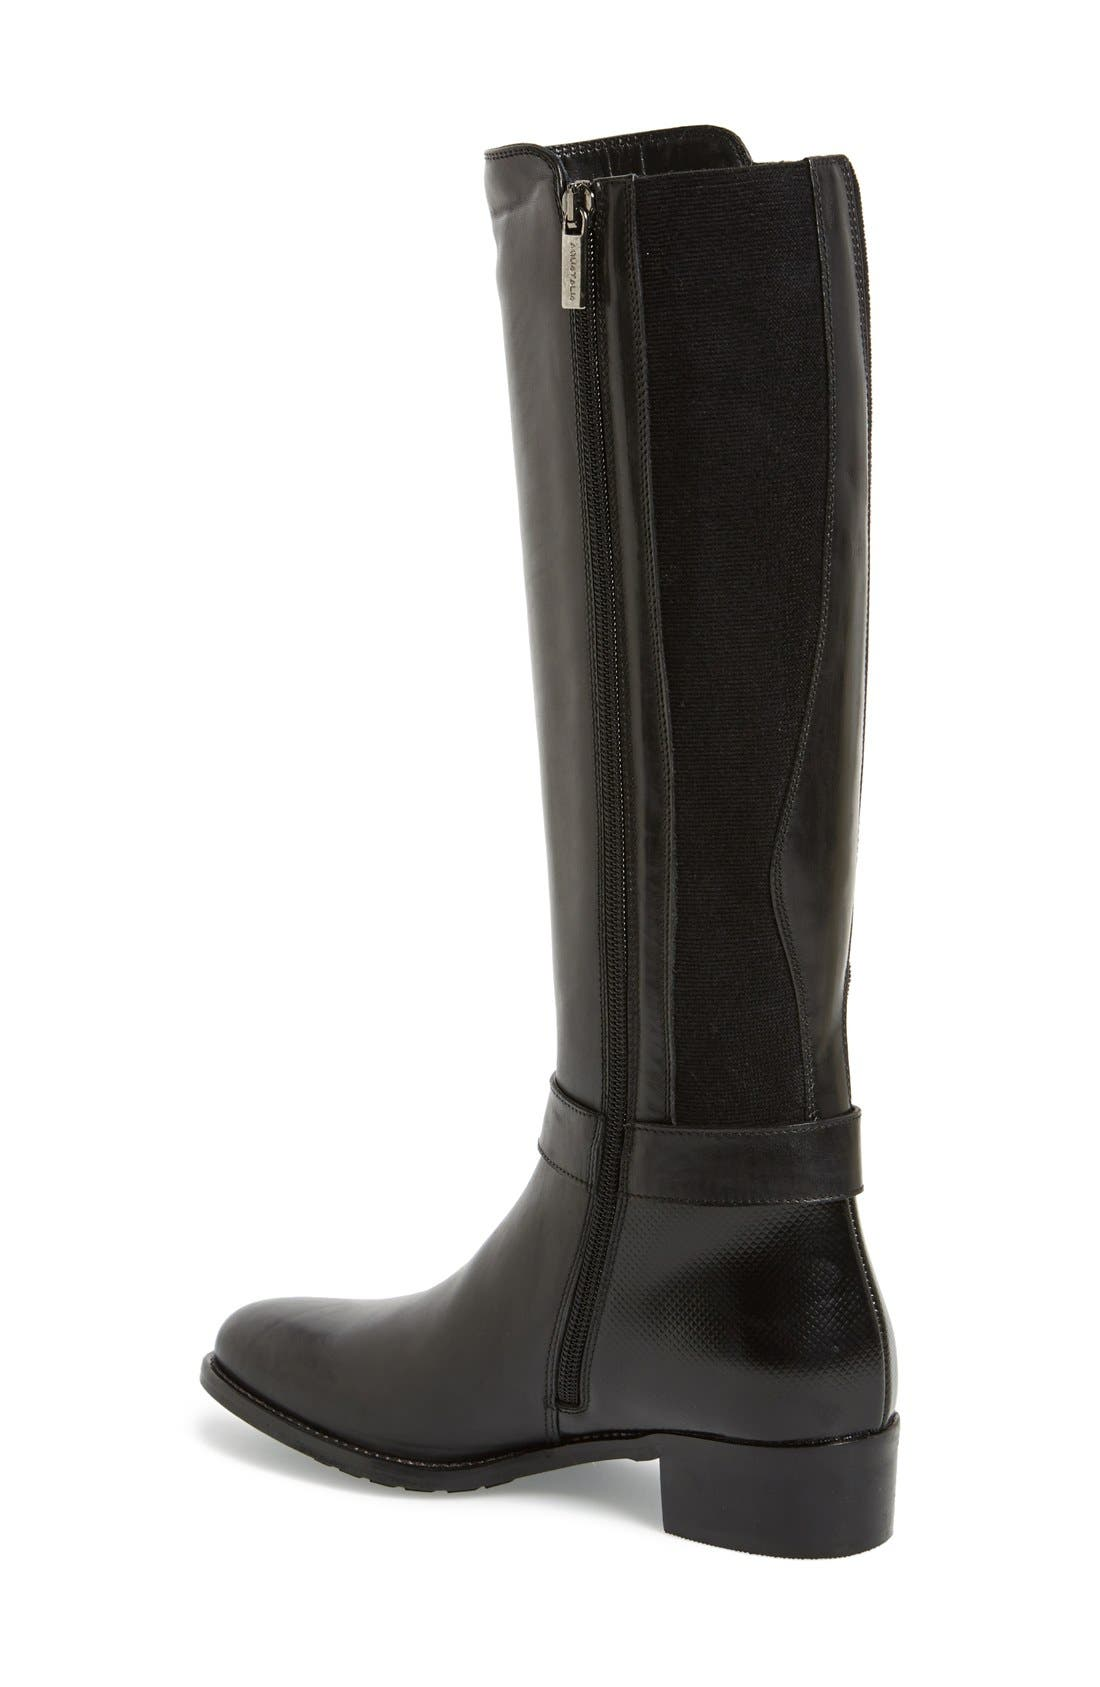 Alternate Image 2  - Aquatalia 'Olita' Weatherproof Riding Boot (Women) (Nordstrom Exclusive)